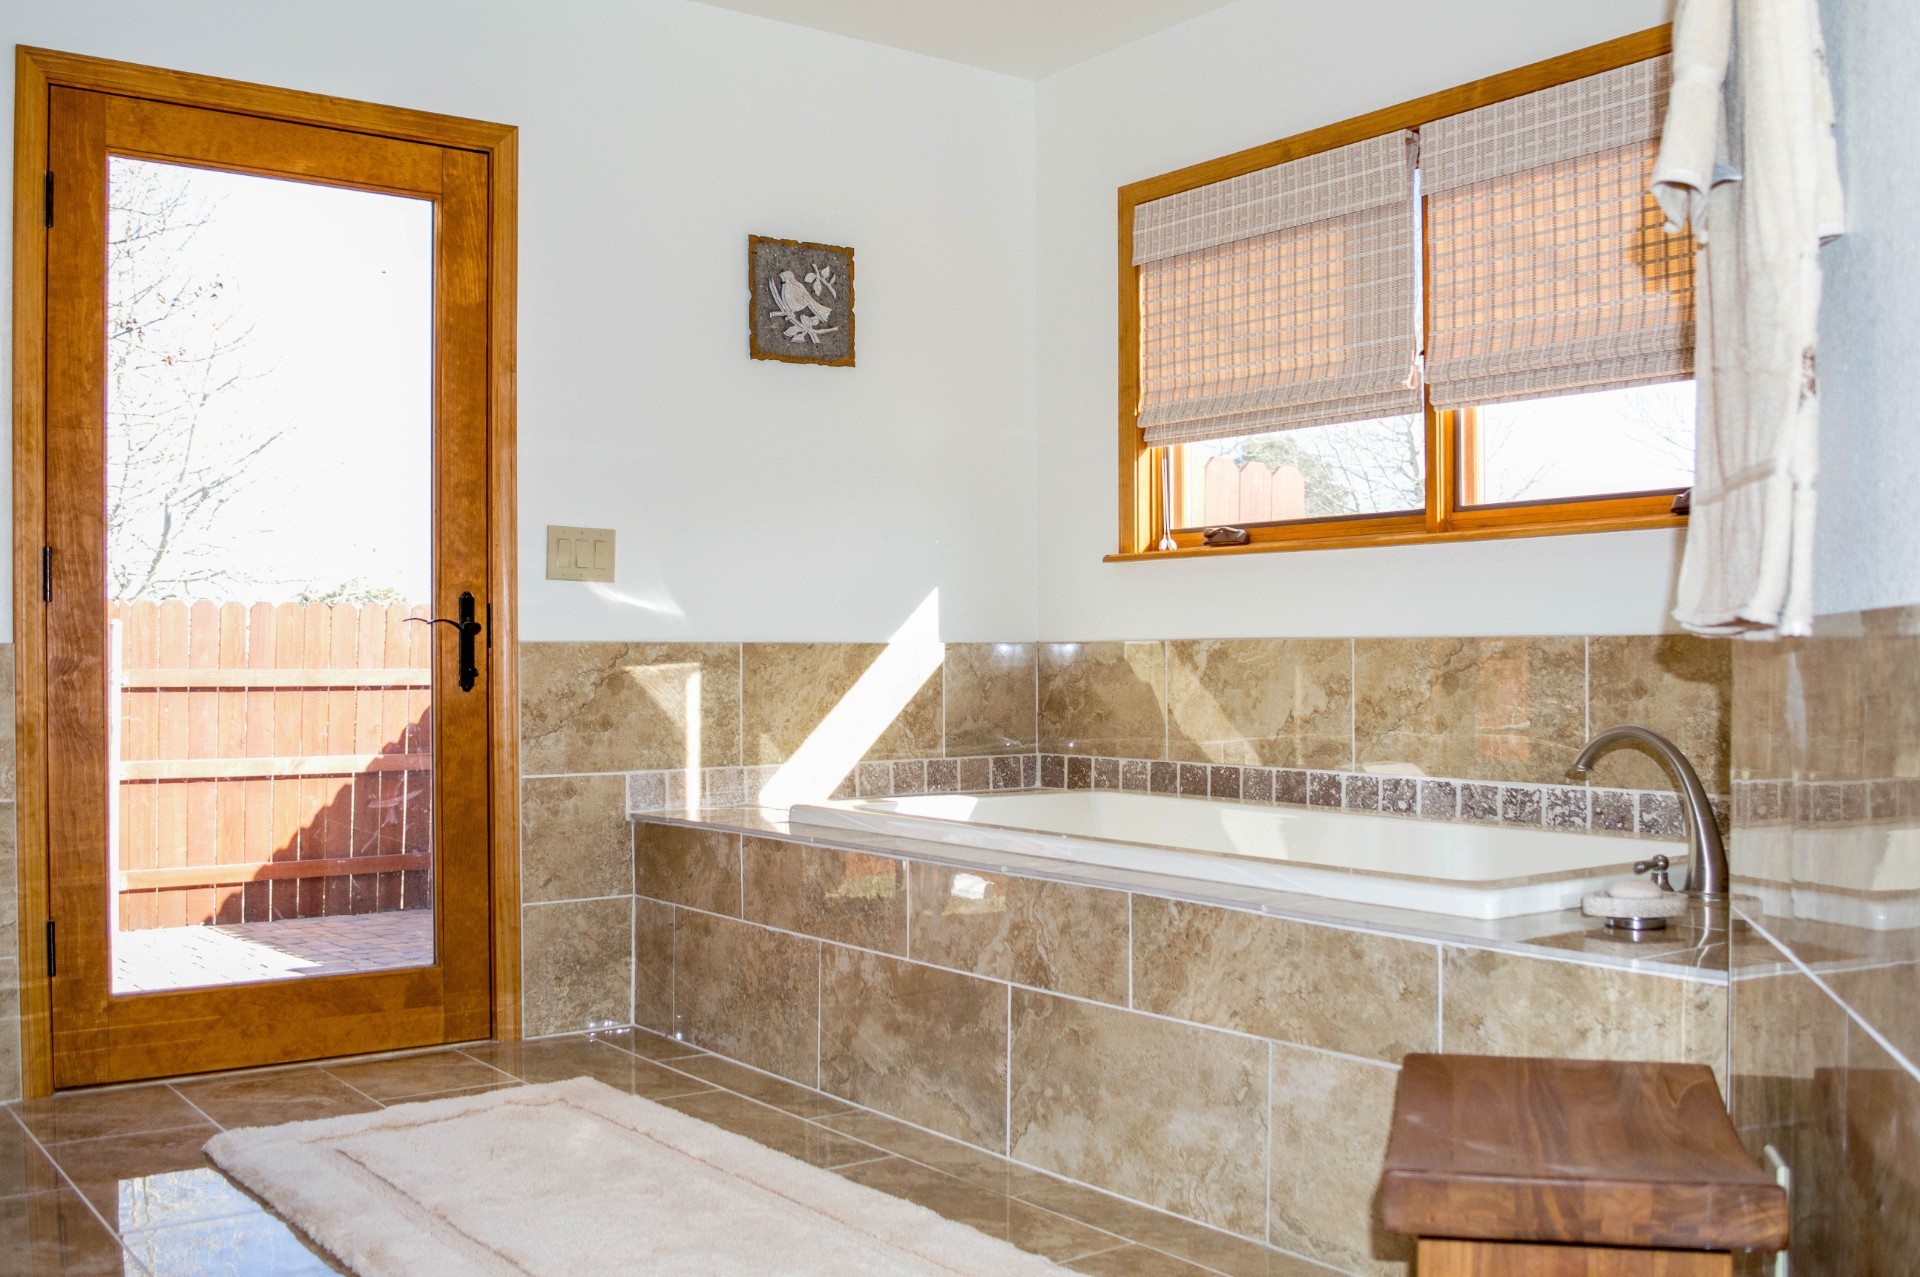 Completed bathtub and bathroom in a residential home.